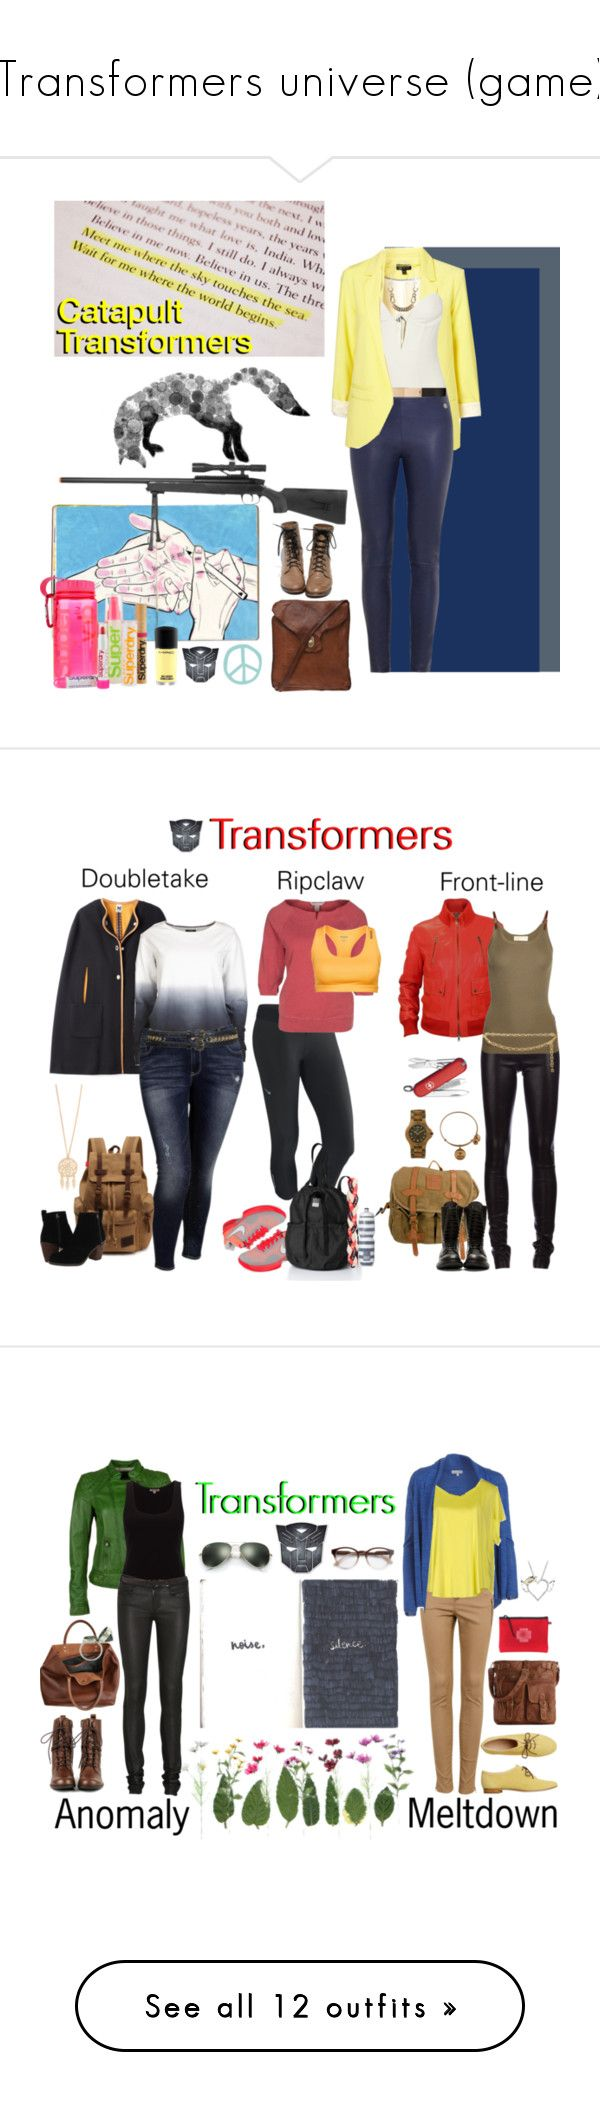 """Transformers universe (game)"" by femme-mecha ❤ liked on Polyvore featuring Willow, Roberto Cavalli, Superdry, RIFLE, Moxham, Campomaggi, MAC Cosmetics, Missoni, VILA and Old Navy"